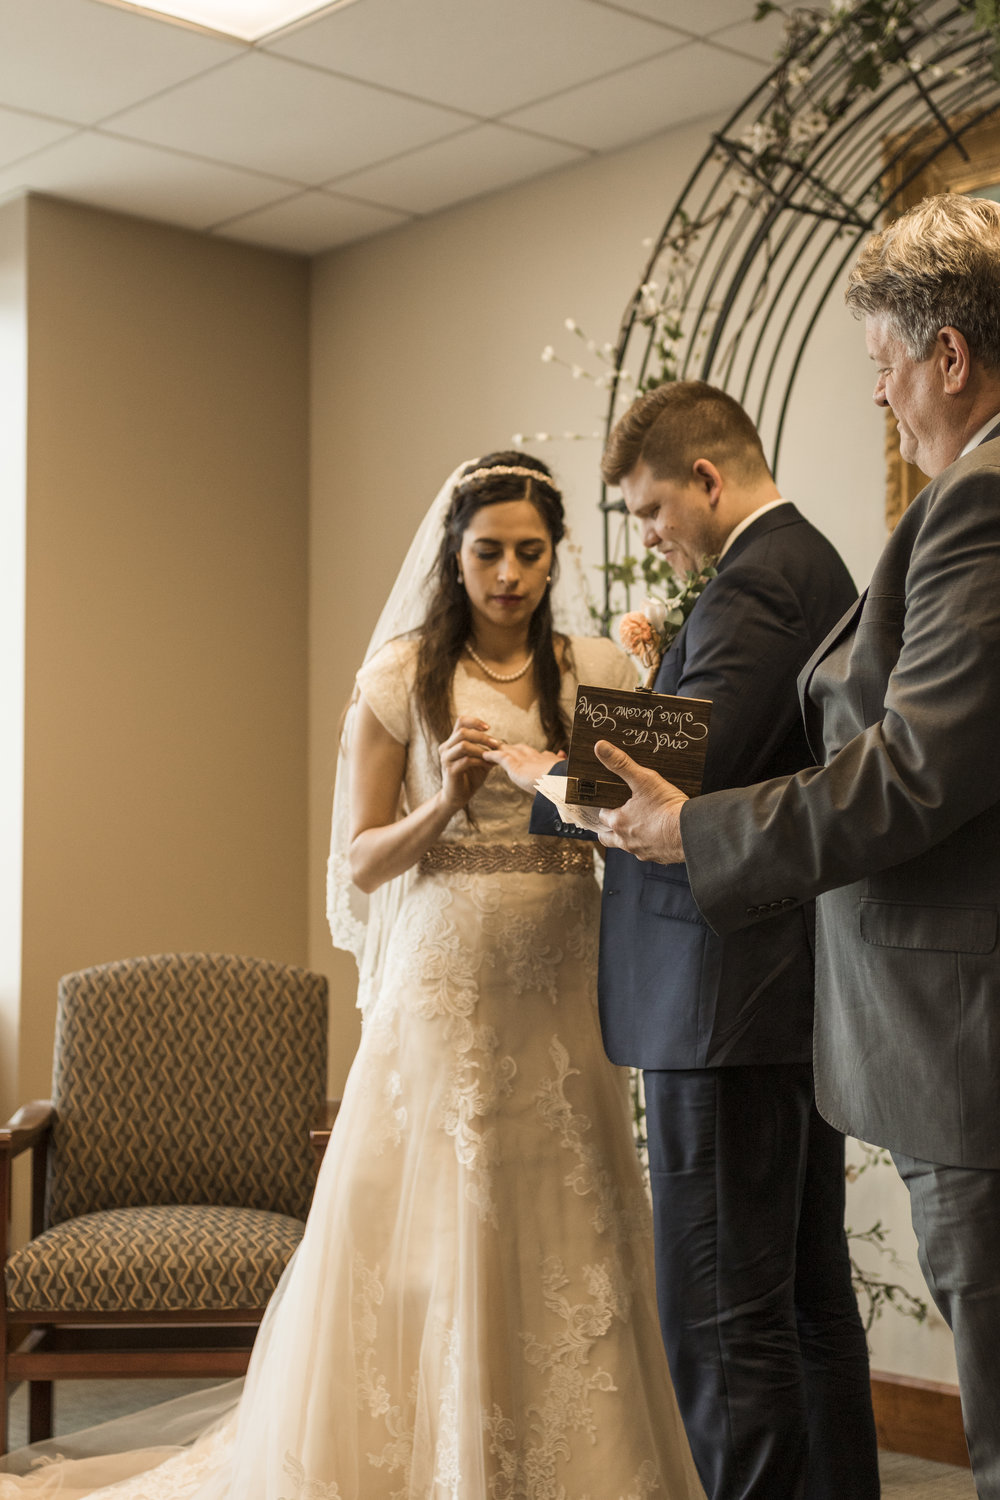 Ring Ceremony in the Zions Bank Founders Room by Bri Bergman Photography02.JPG